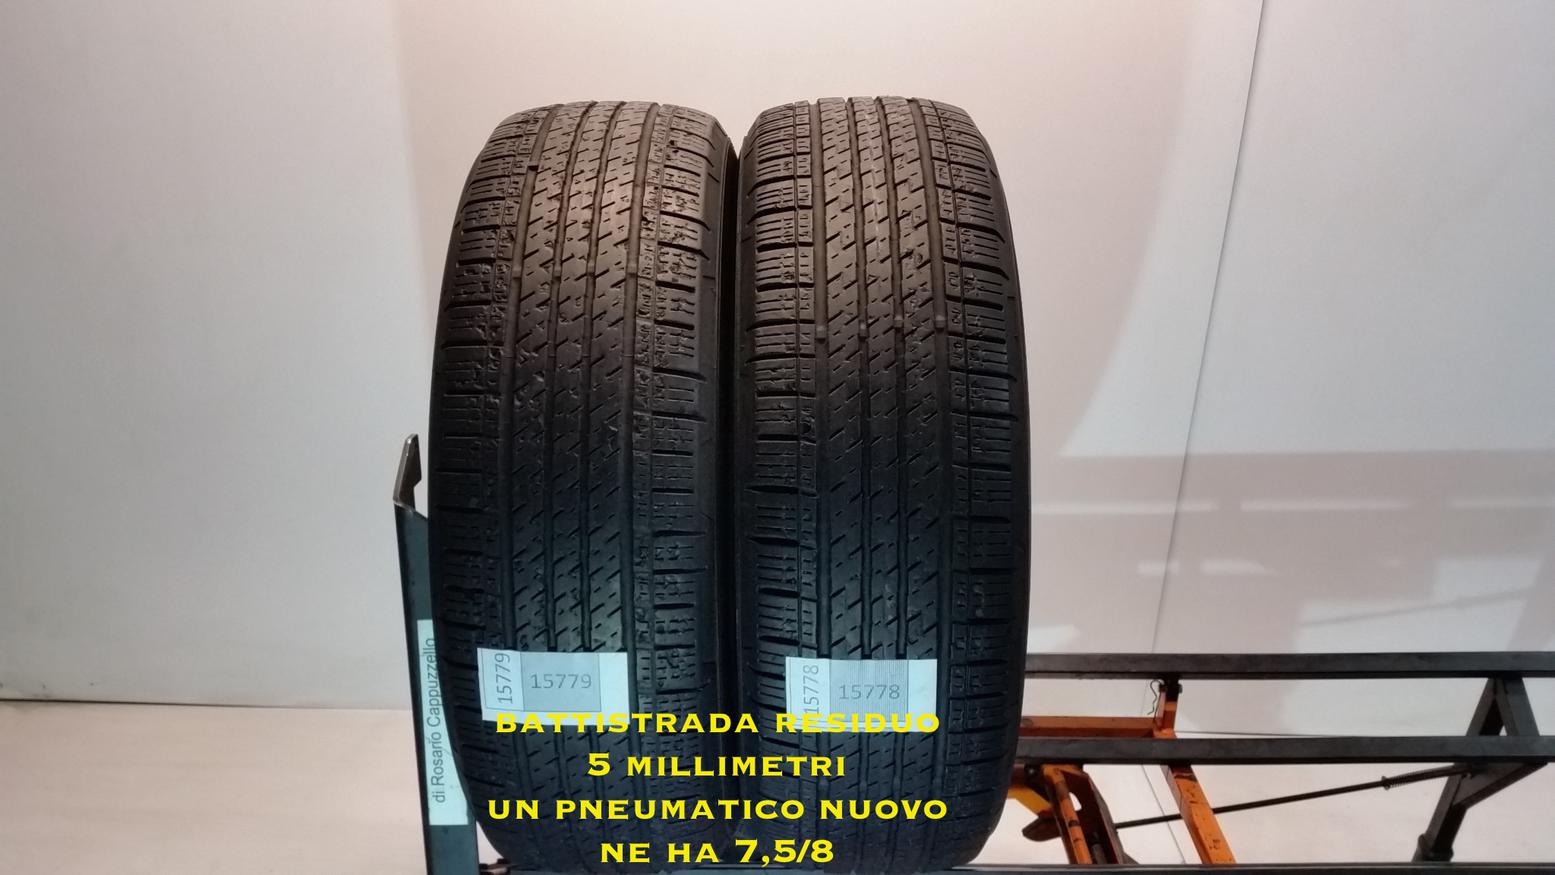 4X4 CONTACT (NON DISPONIBILI)